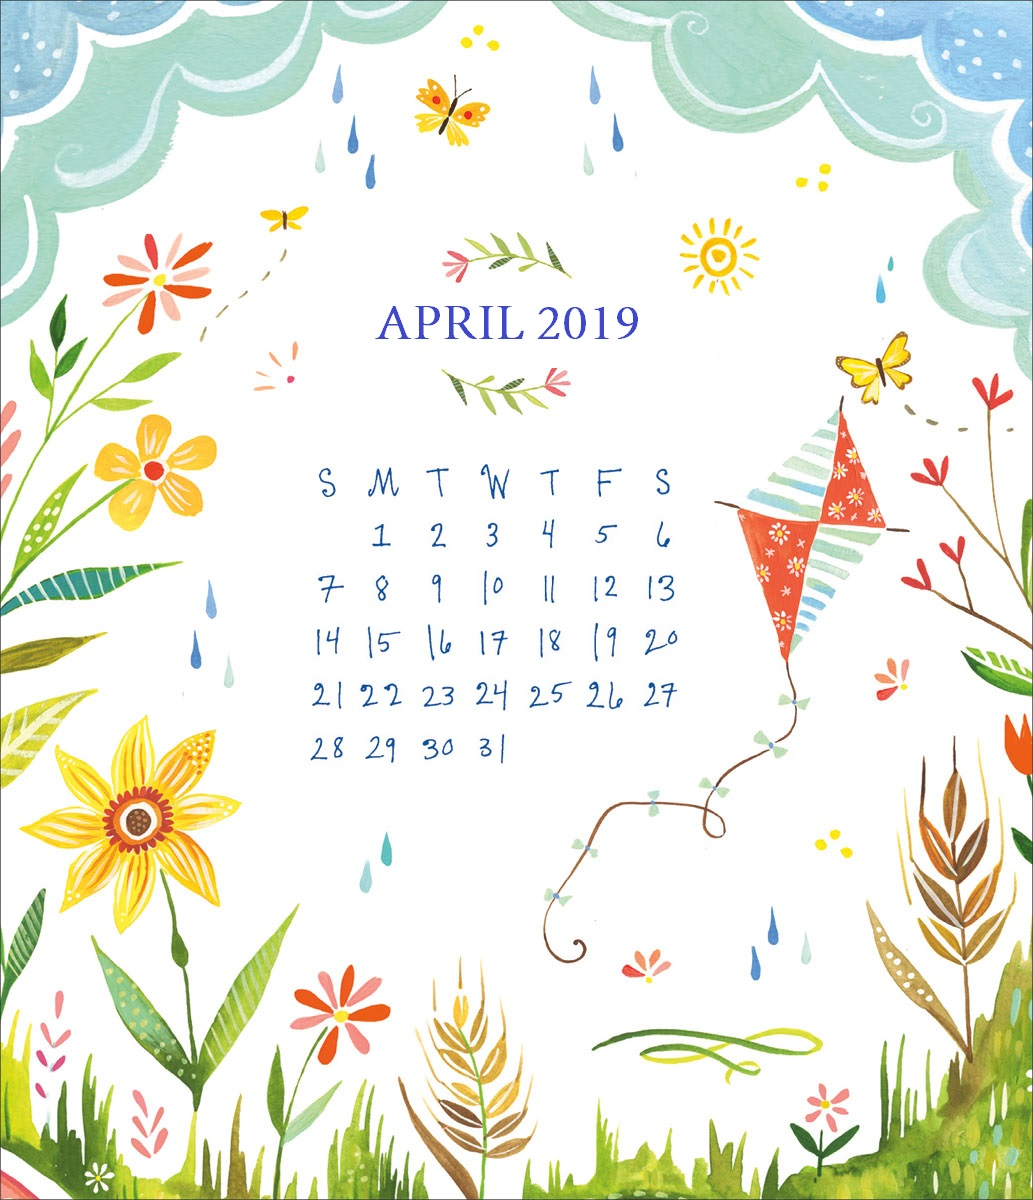 April 2019 HD Desktop Calendar Wallpaper